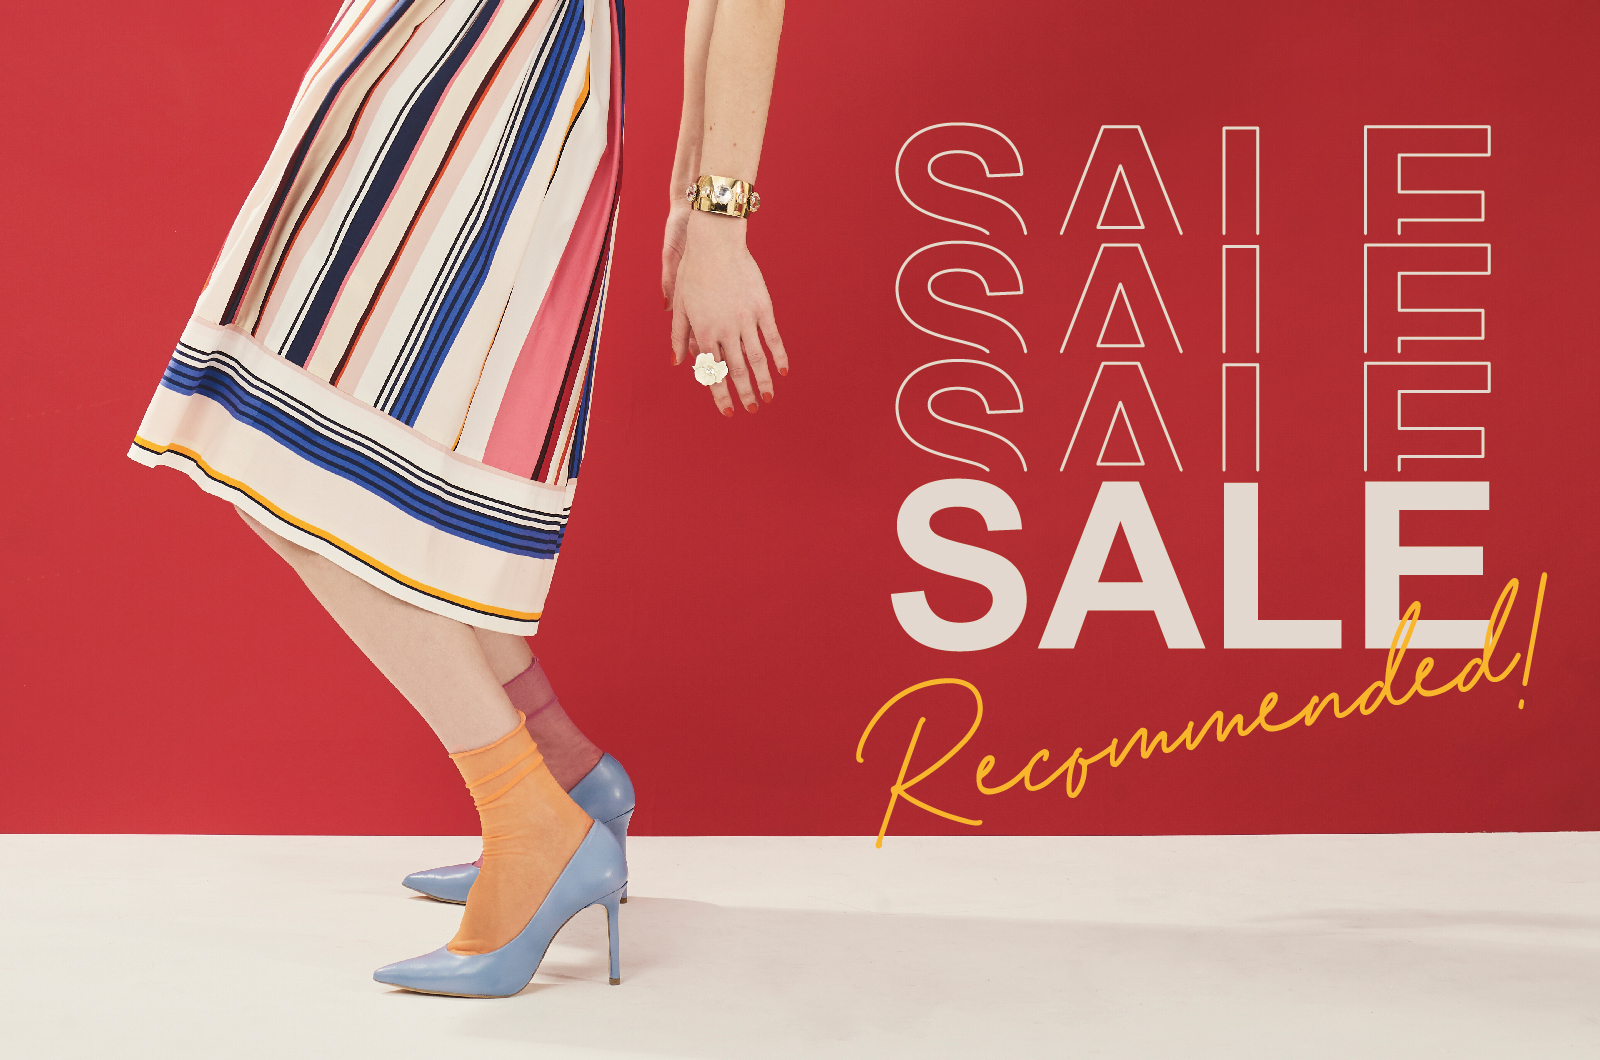 sale recommended! イメージ画像